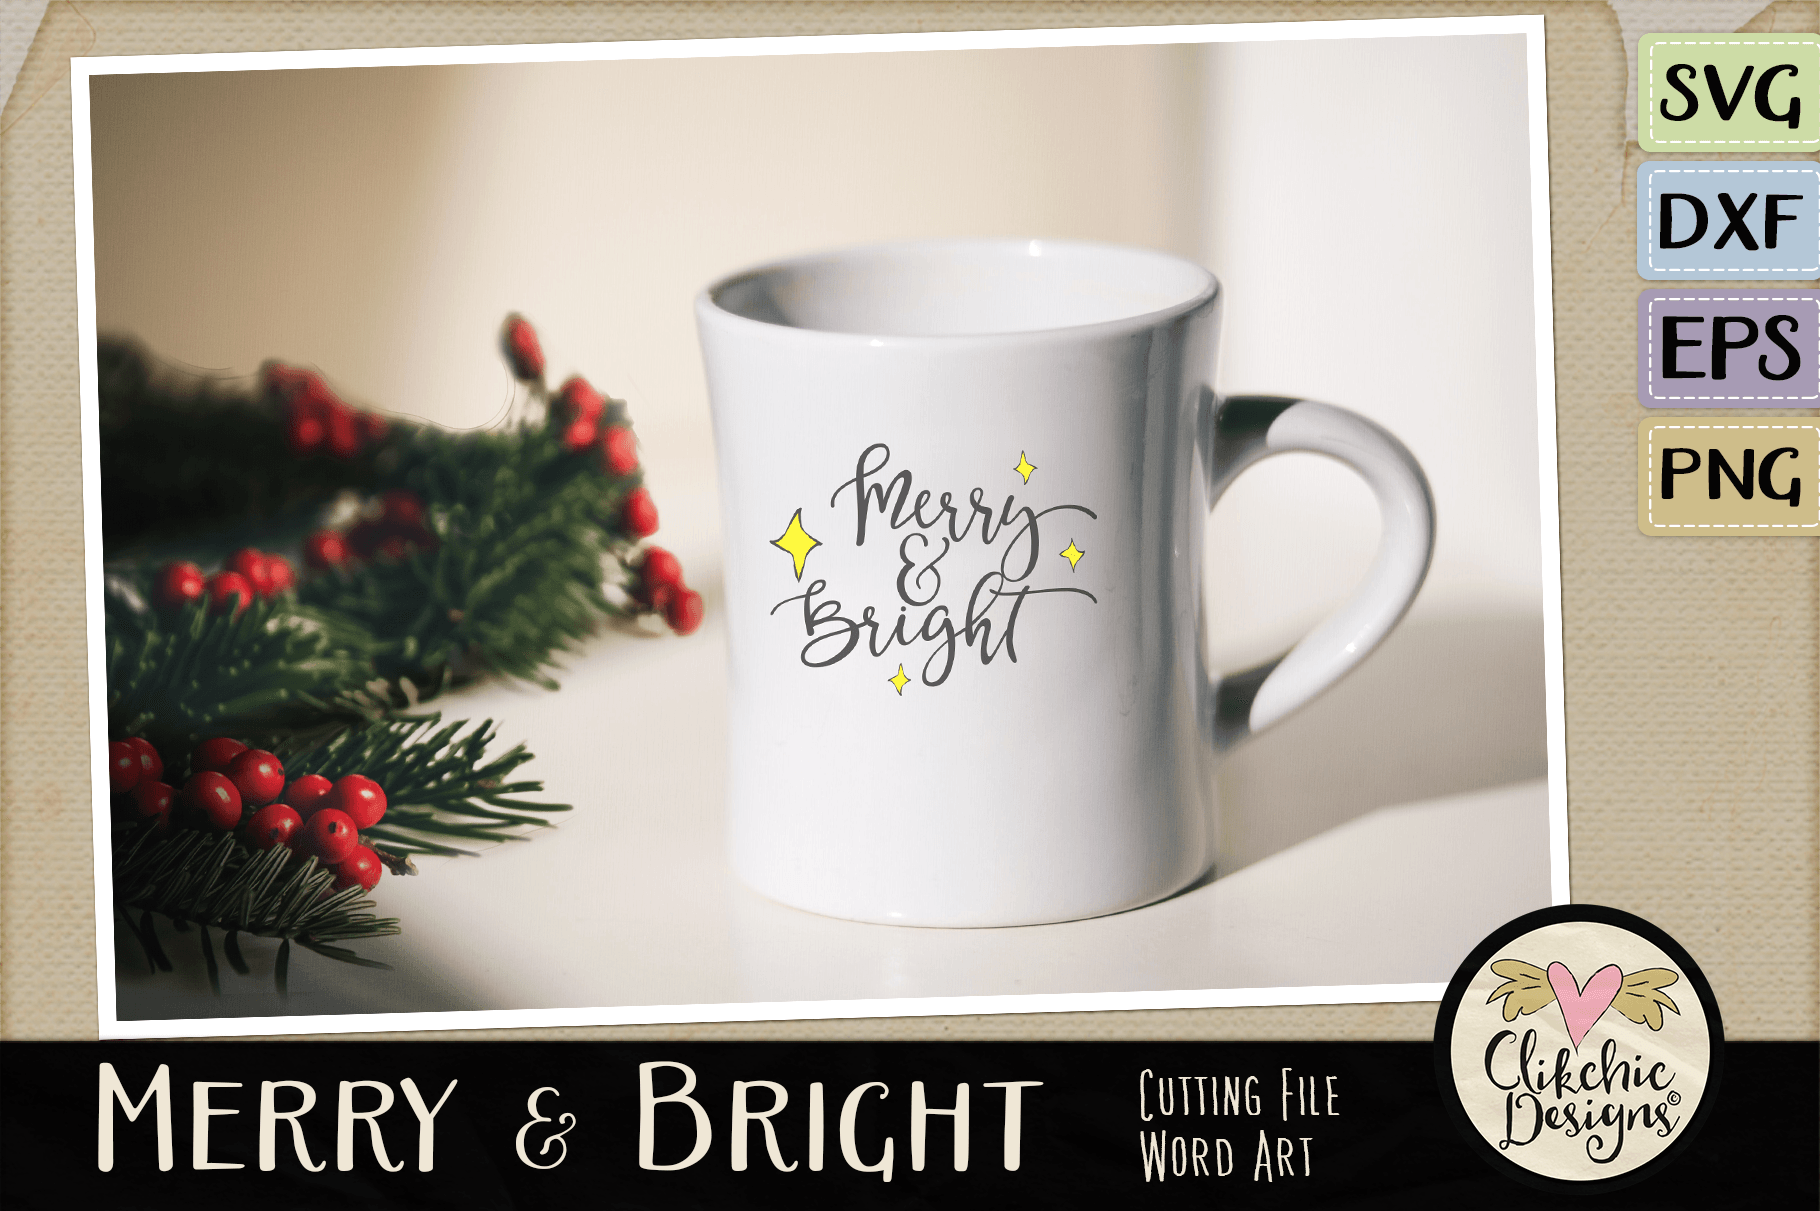 Christmas SVG - Merry & Bright Cutting file Clipart Word Art example image 2